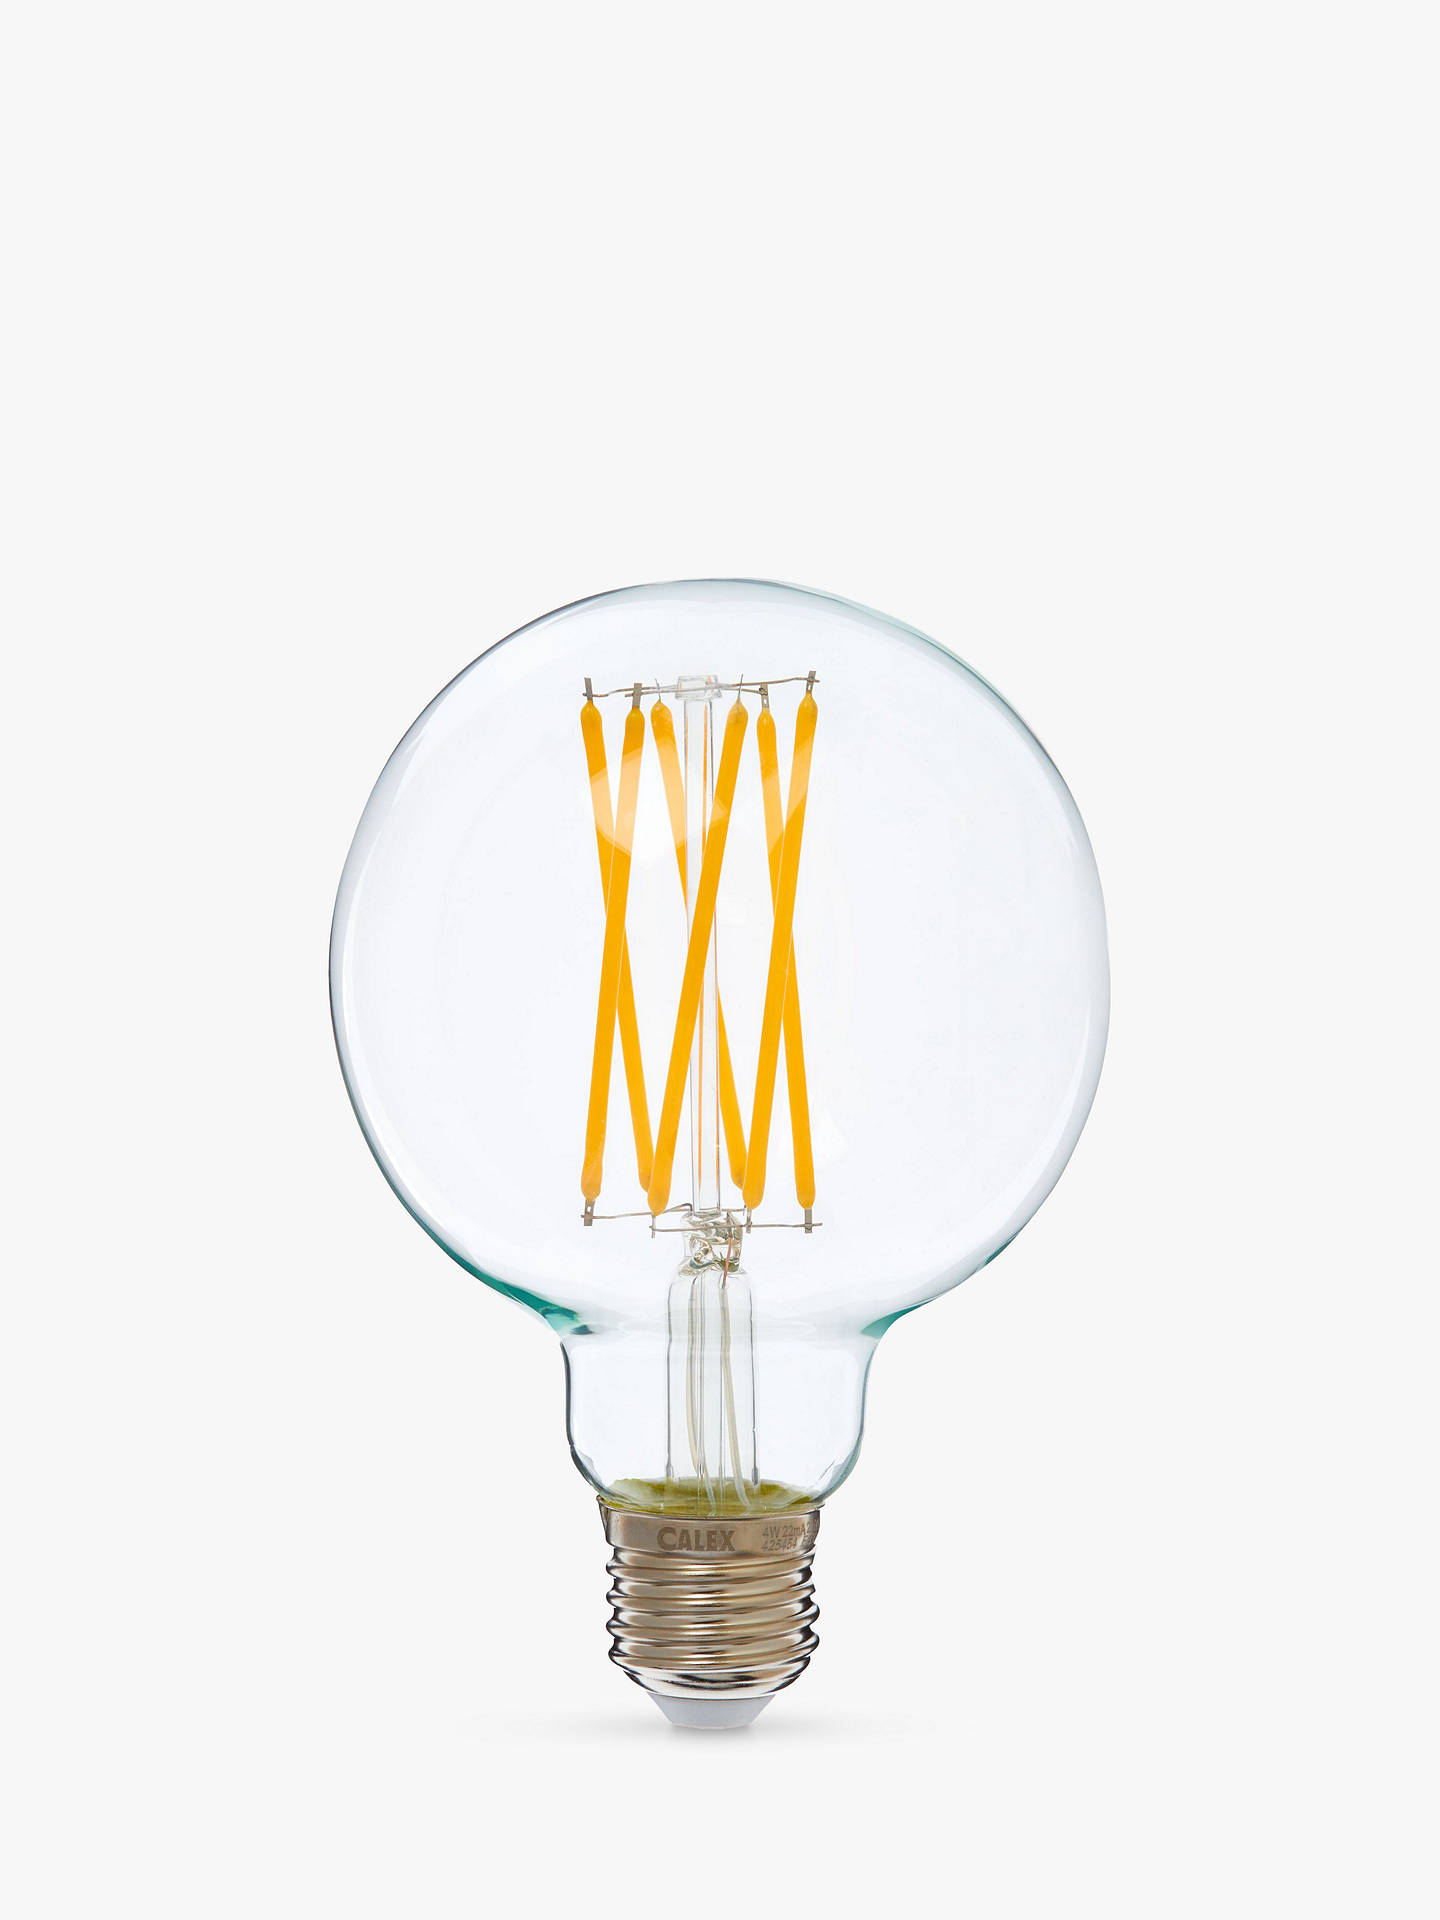 BuyCalex 4W ES LED G95 Globe Bulb, Clear, Dimmable Online at johnlewis.com